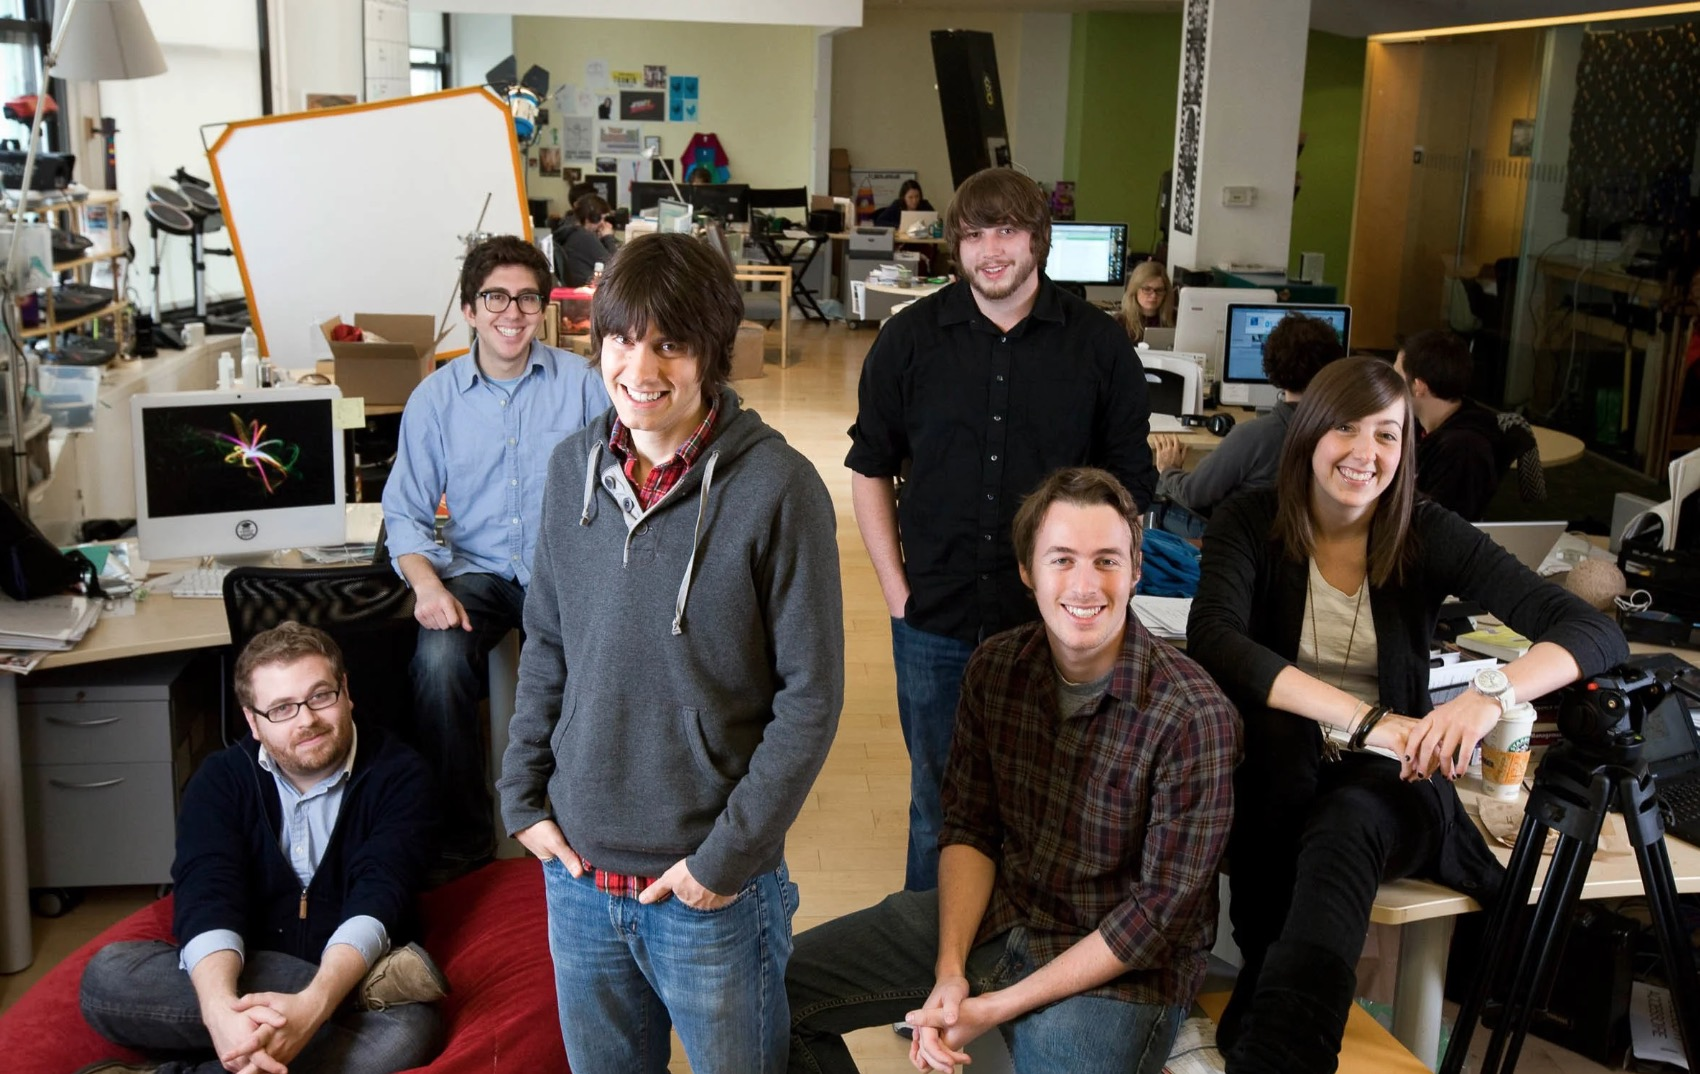 CollegeHumor Helped Shape Online Comedy. What Went Wrong?